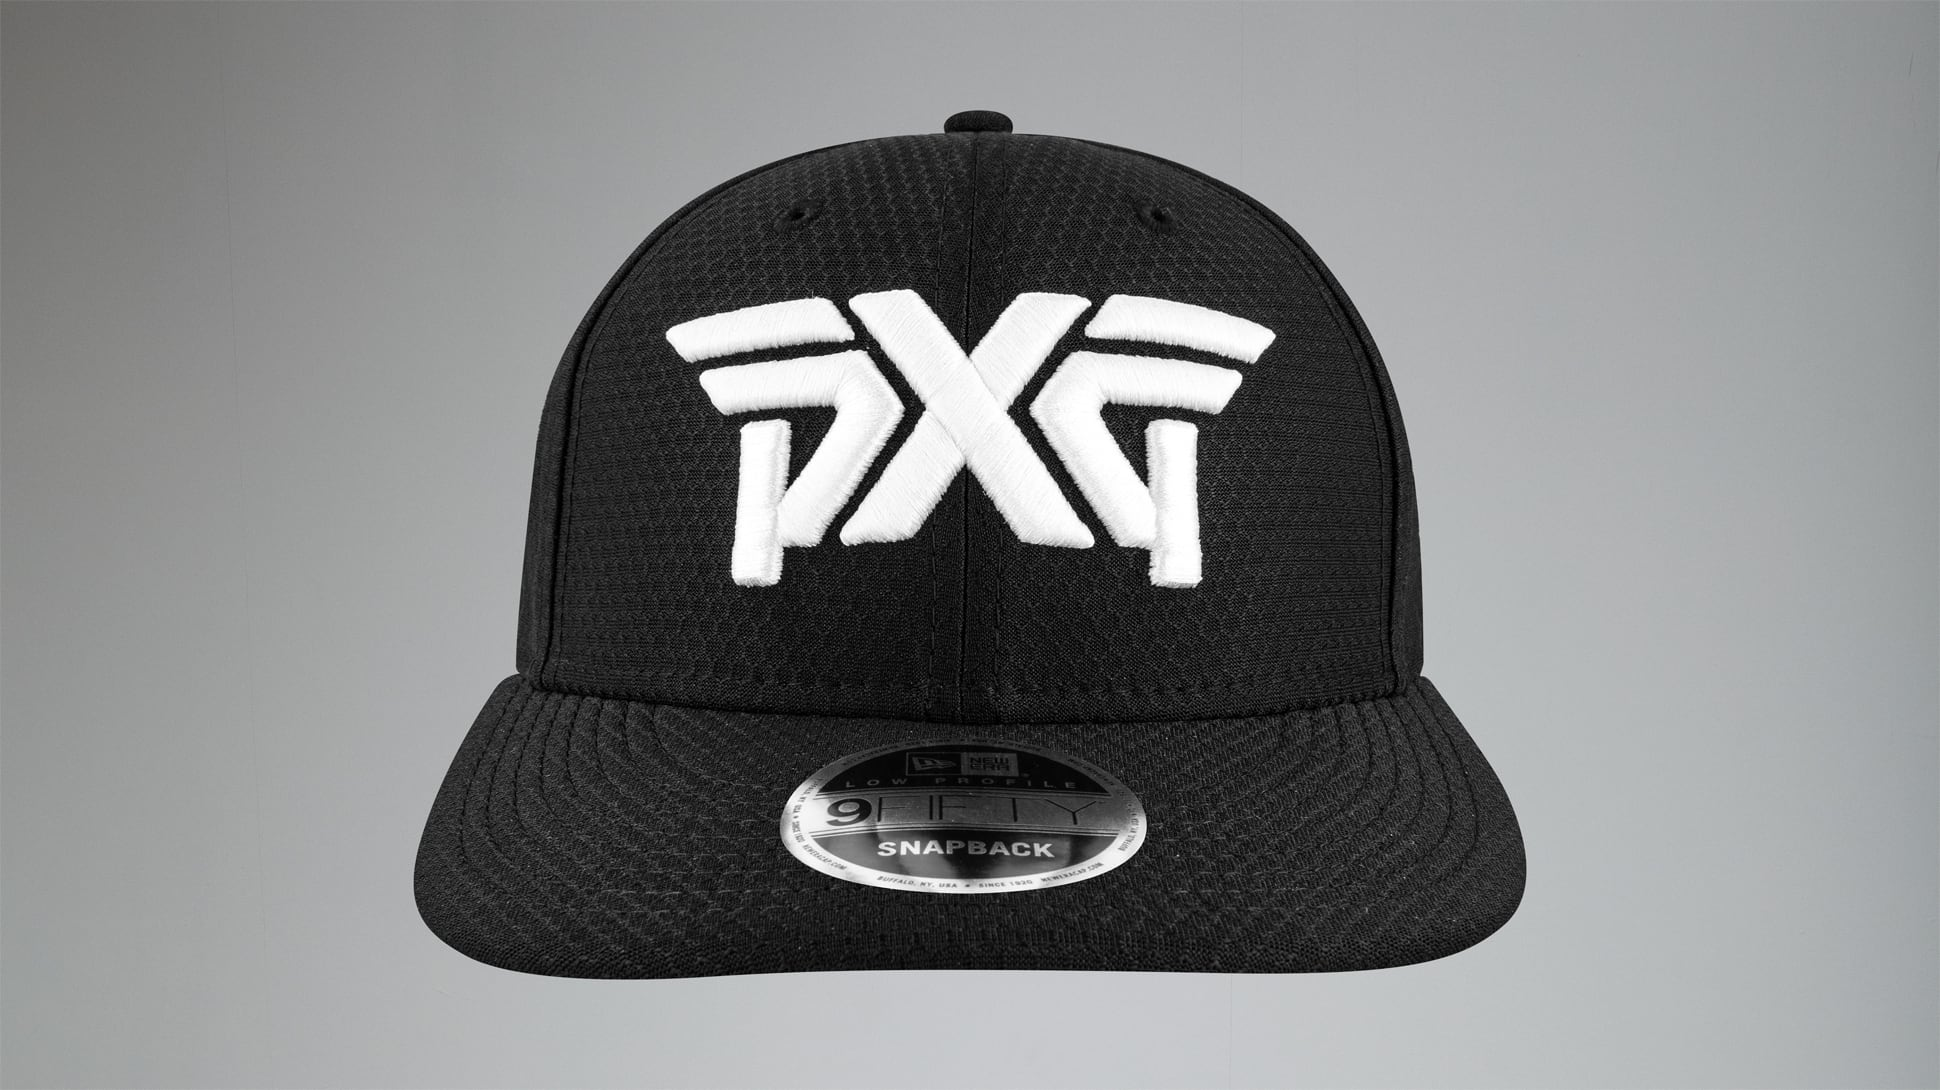 First Responders 9FIFTY Snapback Cap – Medical Service Image 2